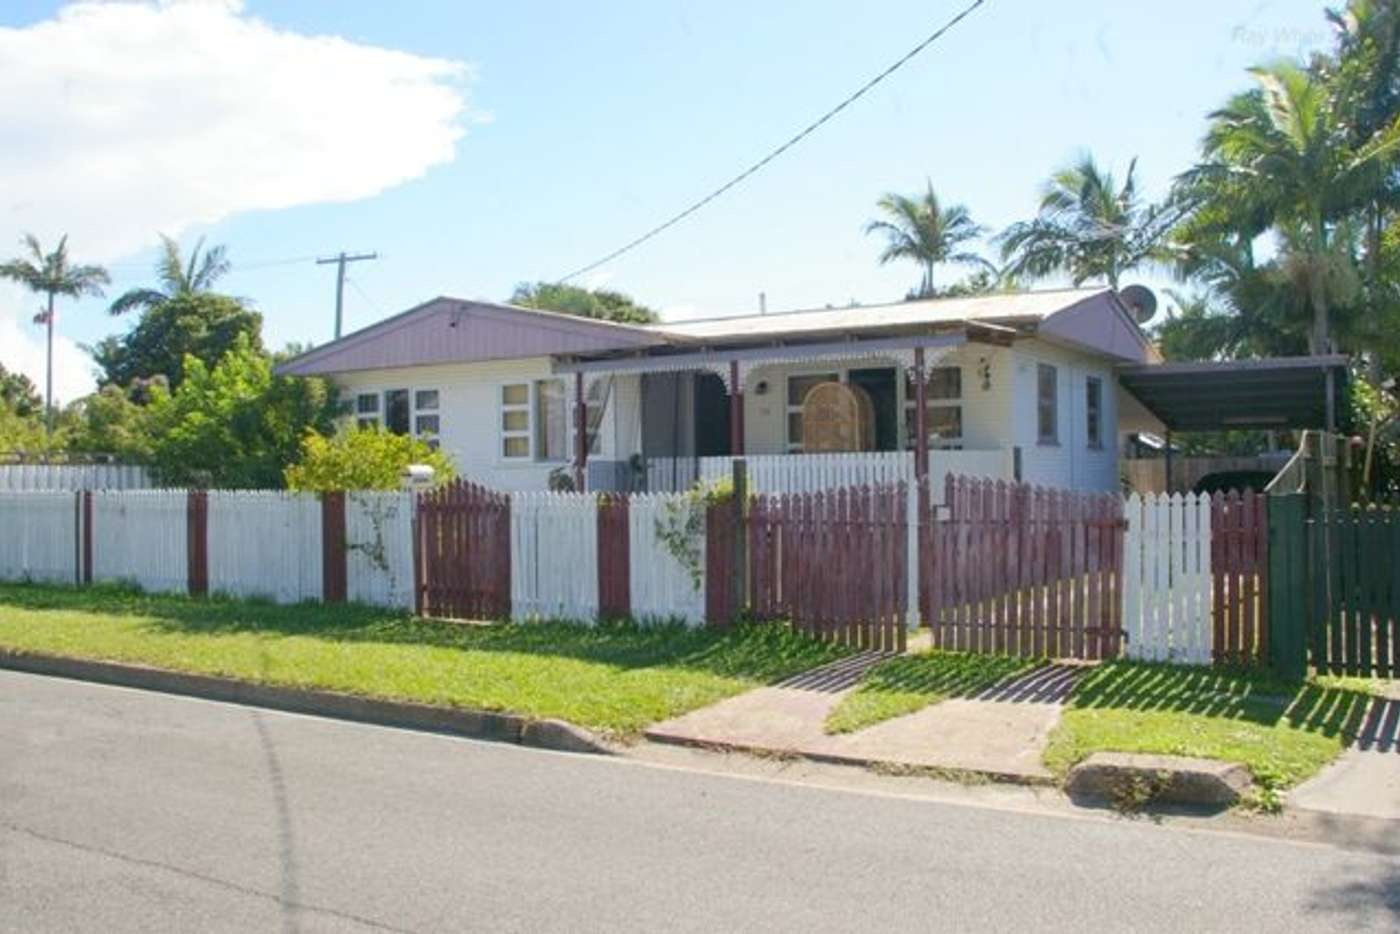 Main view of Homely house listing, 77 Grosvenor Terrace, Deception Bay QLD 4508